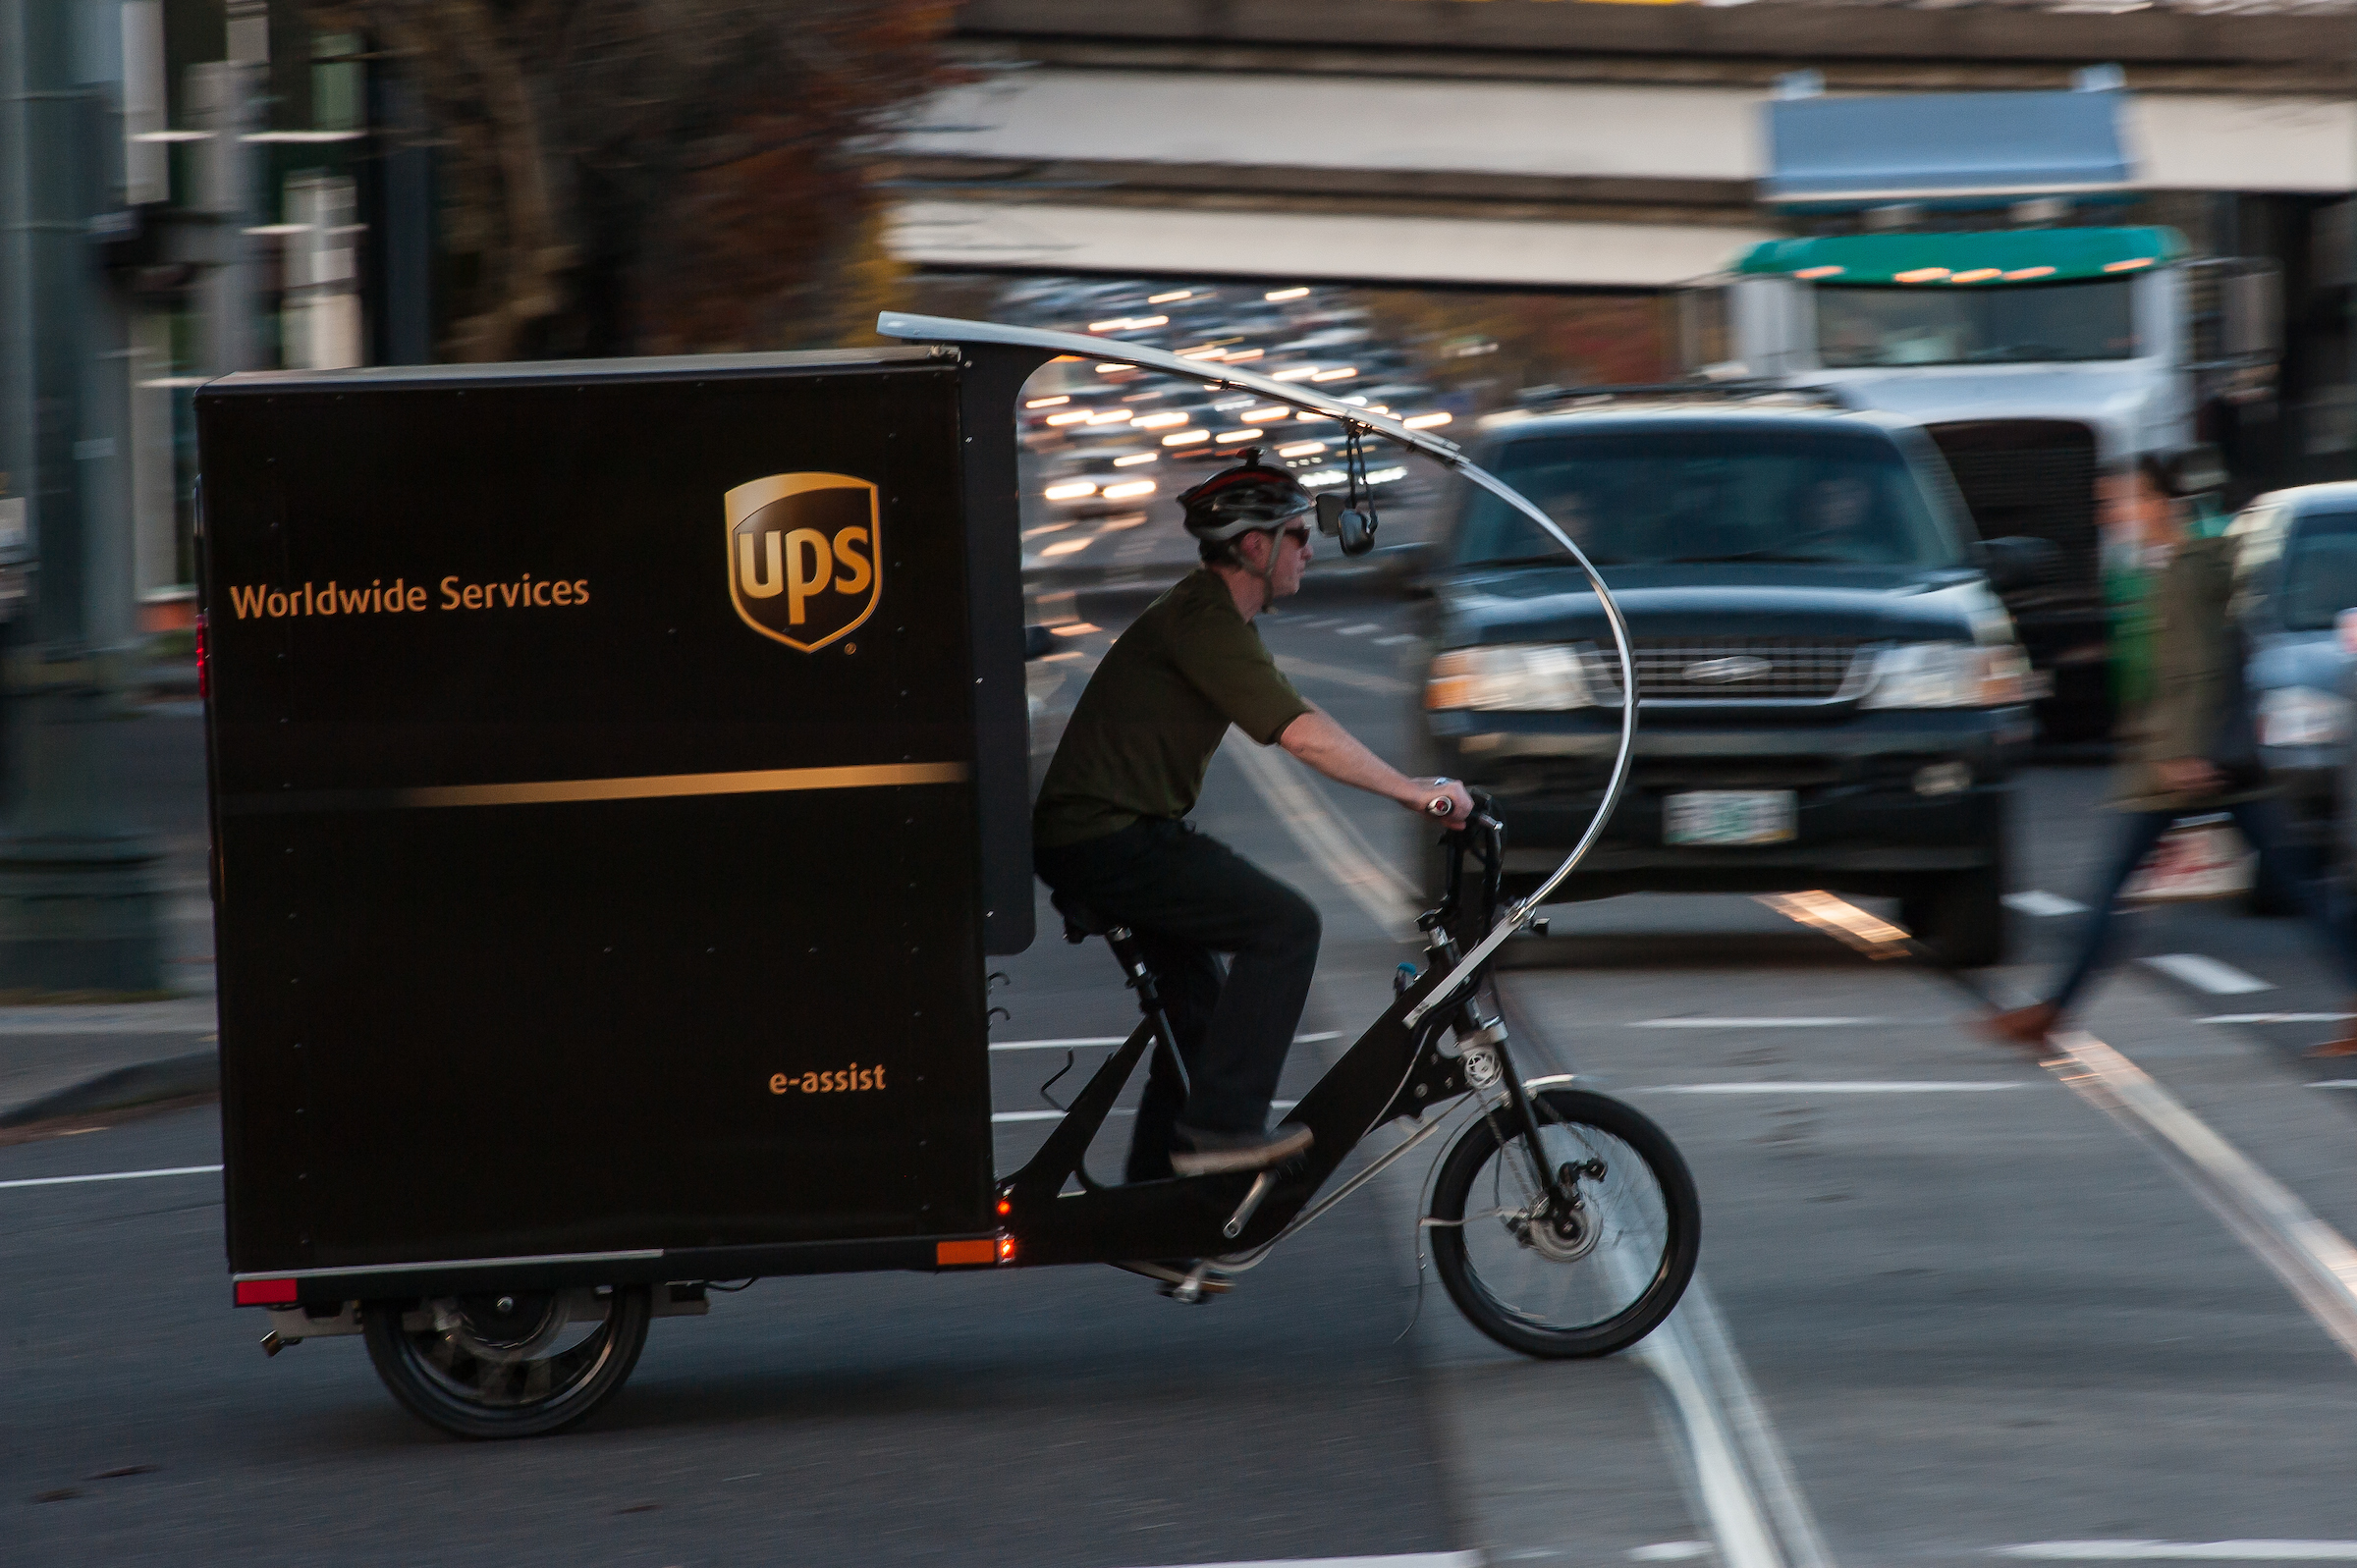 Ups Freight Quote Ups Now Using Pedalpowered Trike To Deliver Freight In Portland